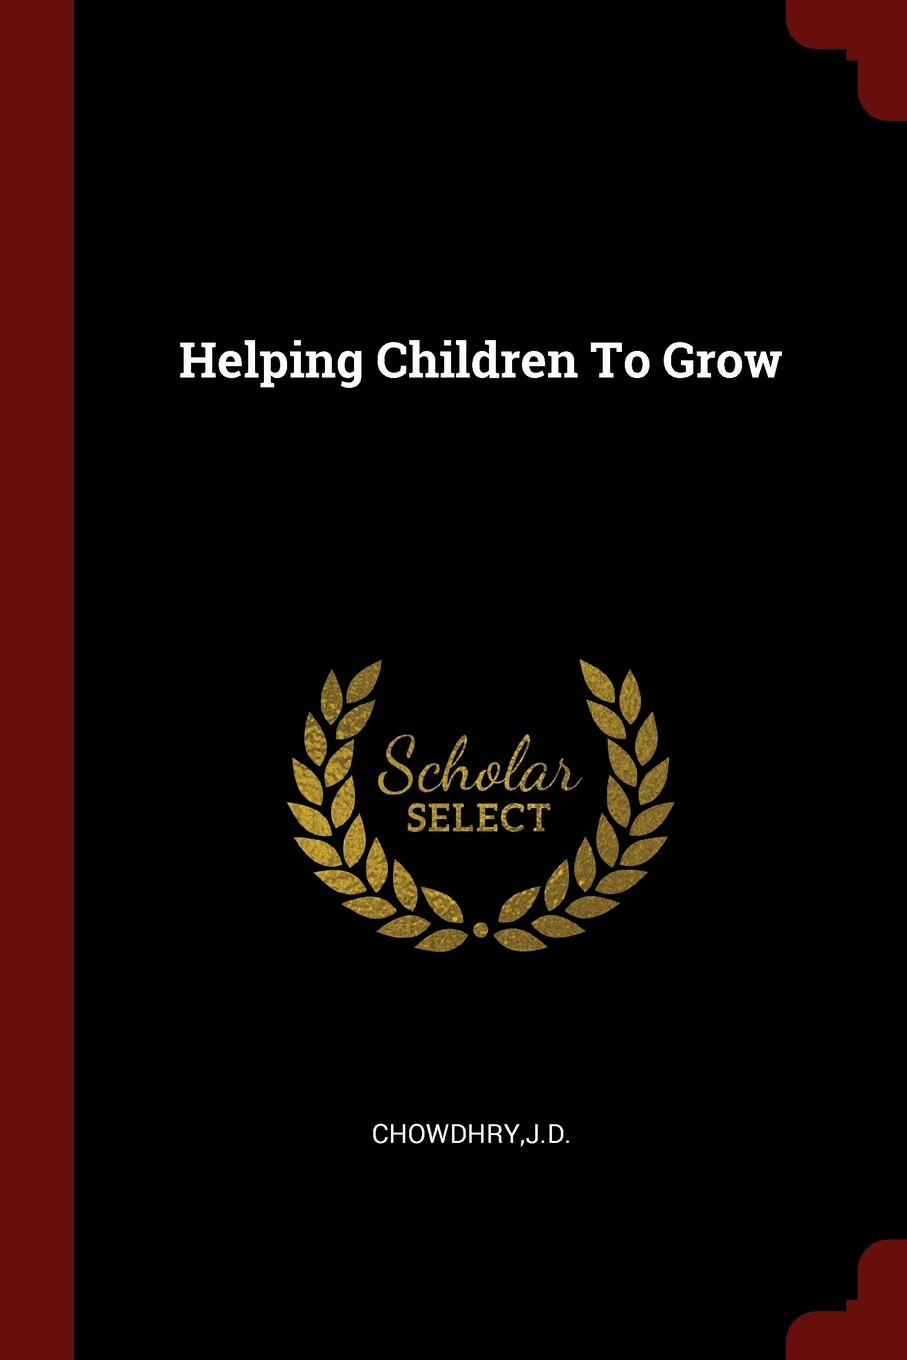 JD Chowdhry Helping Children To Grow jd mcpherson jd mcpherson let the good times roll